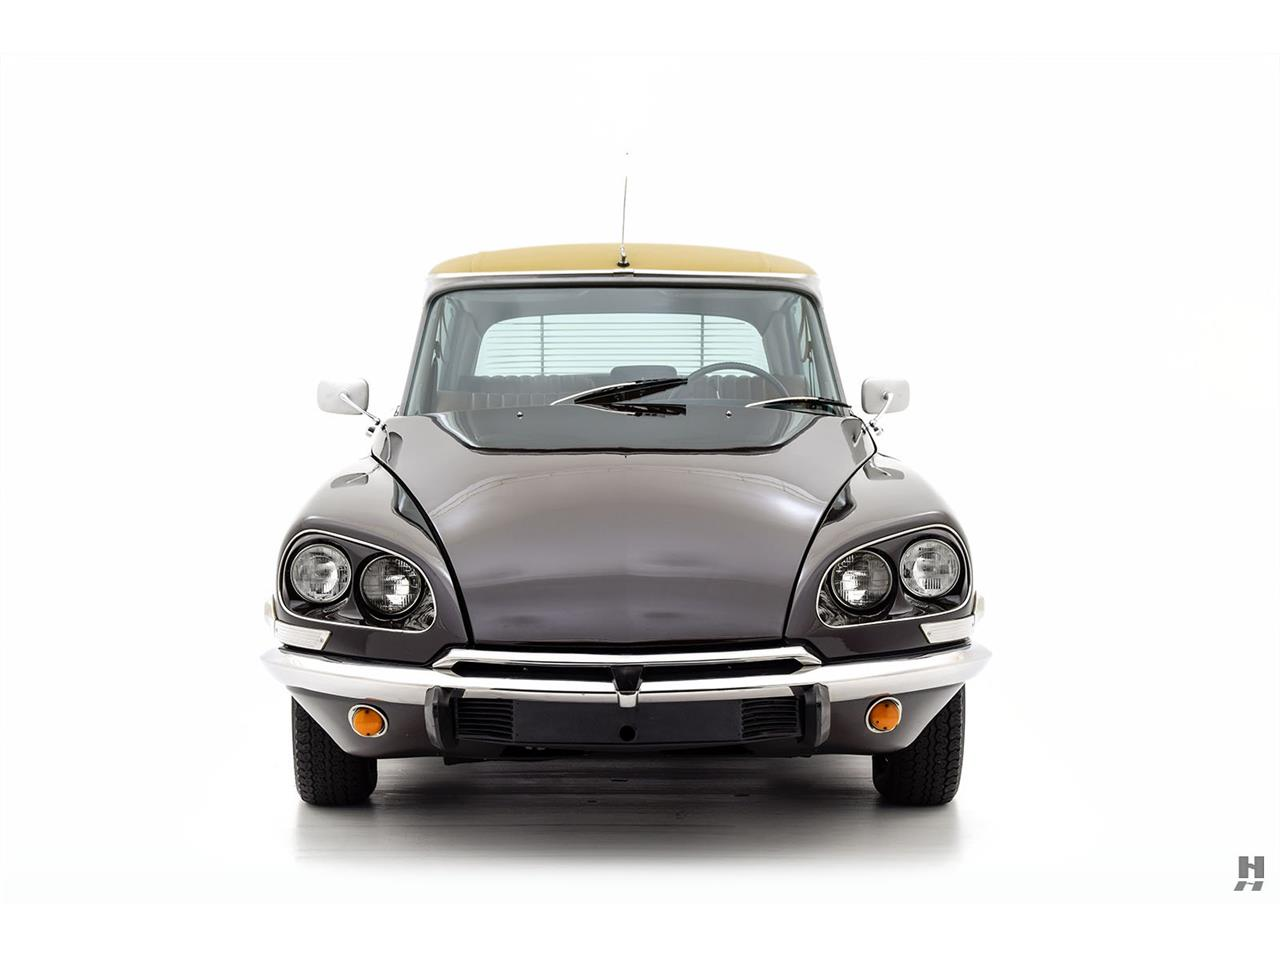 Large Picture of '69 Citroen DS21 Pallas located in Saint Louis Missouri - $79,500.00 Offered by Hyman Ltd. Classic Cars - OVD1